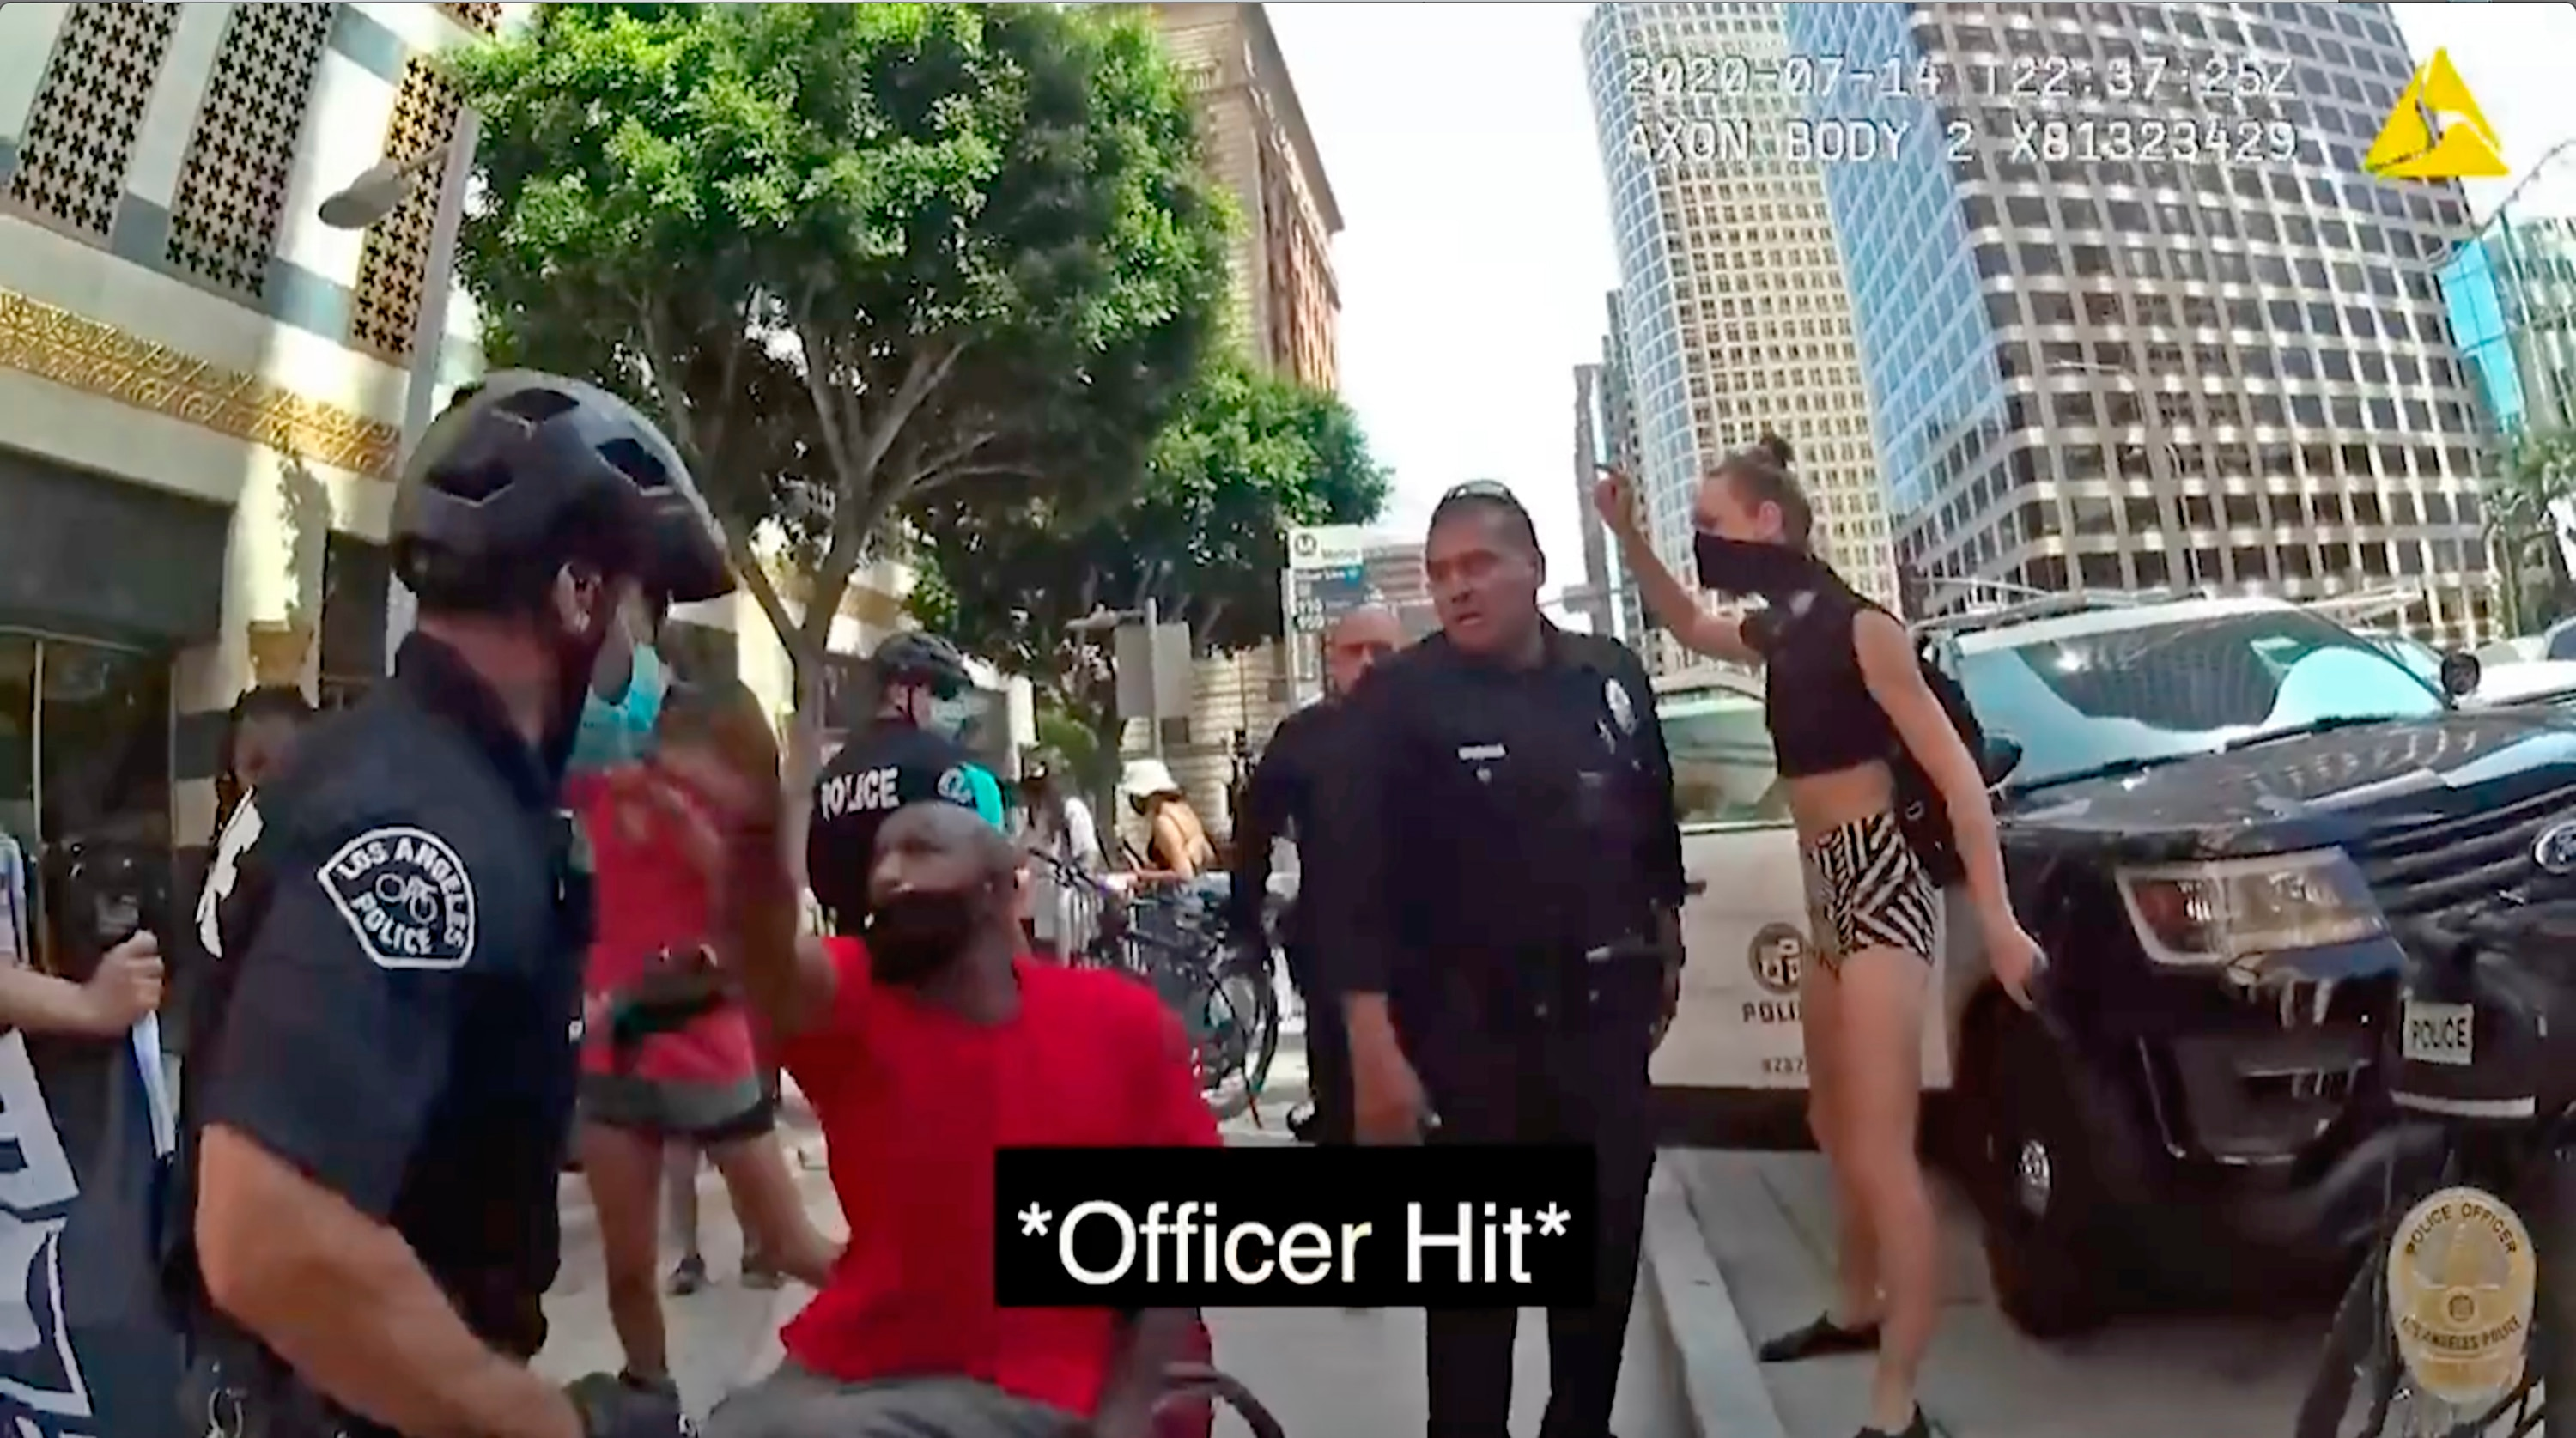 www.voanews.com: LA Police Release Video Showing Uses of Force During Protest